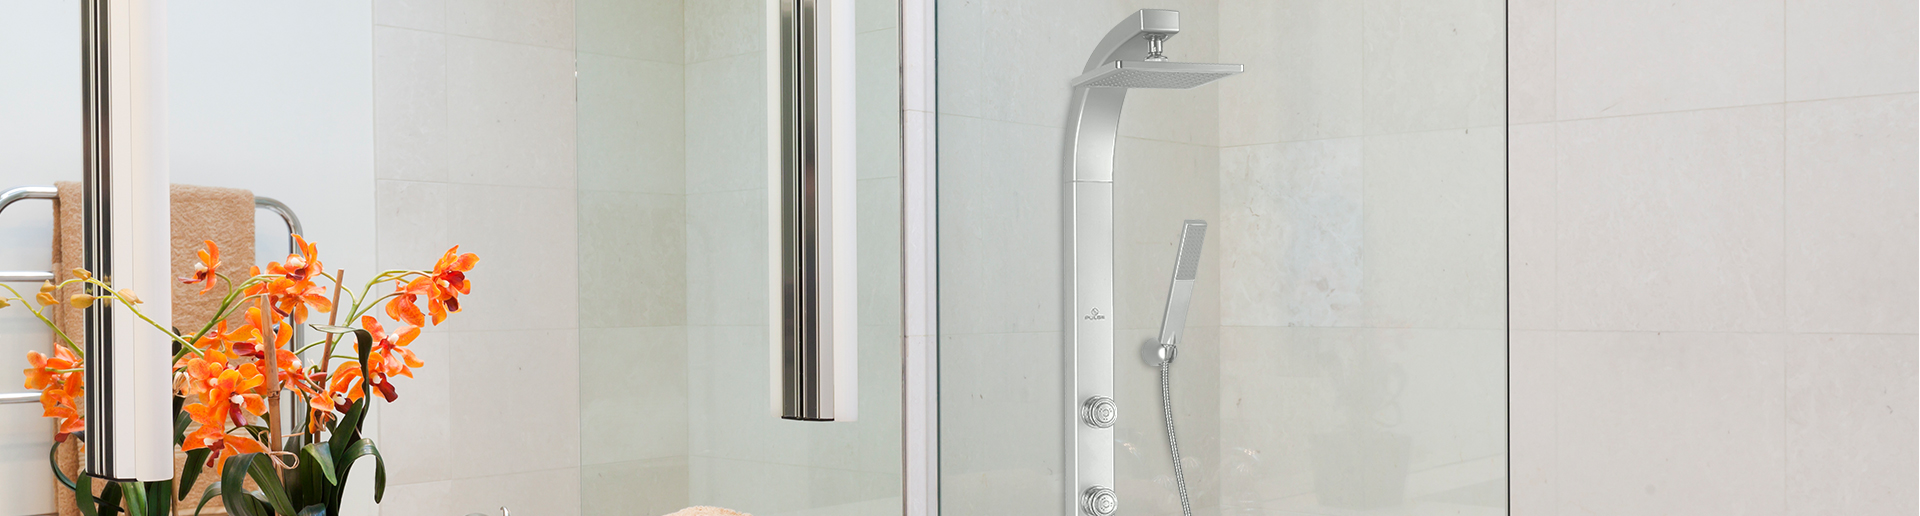 Pulse ShowerSpas – Your source for pre-plumbed shower systems